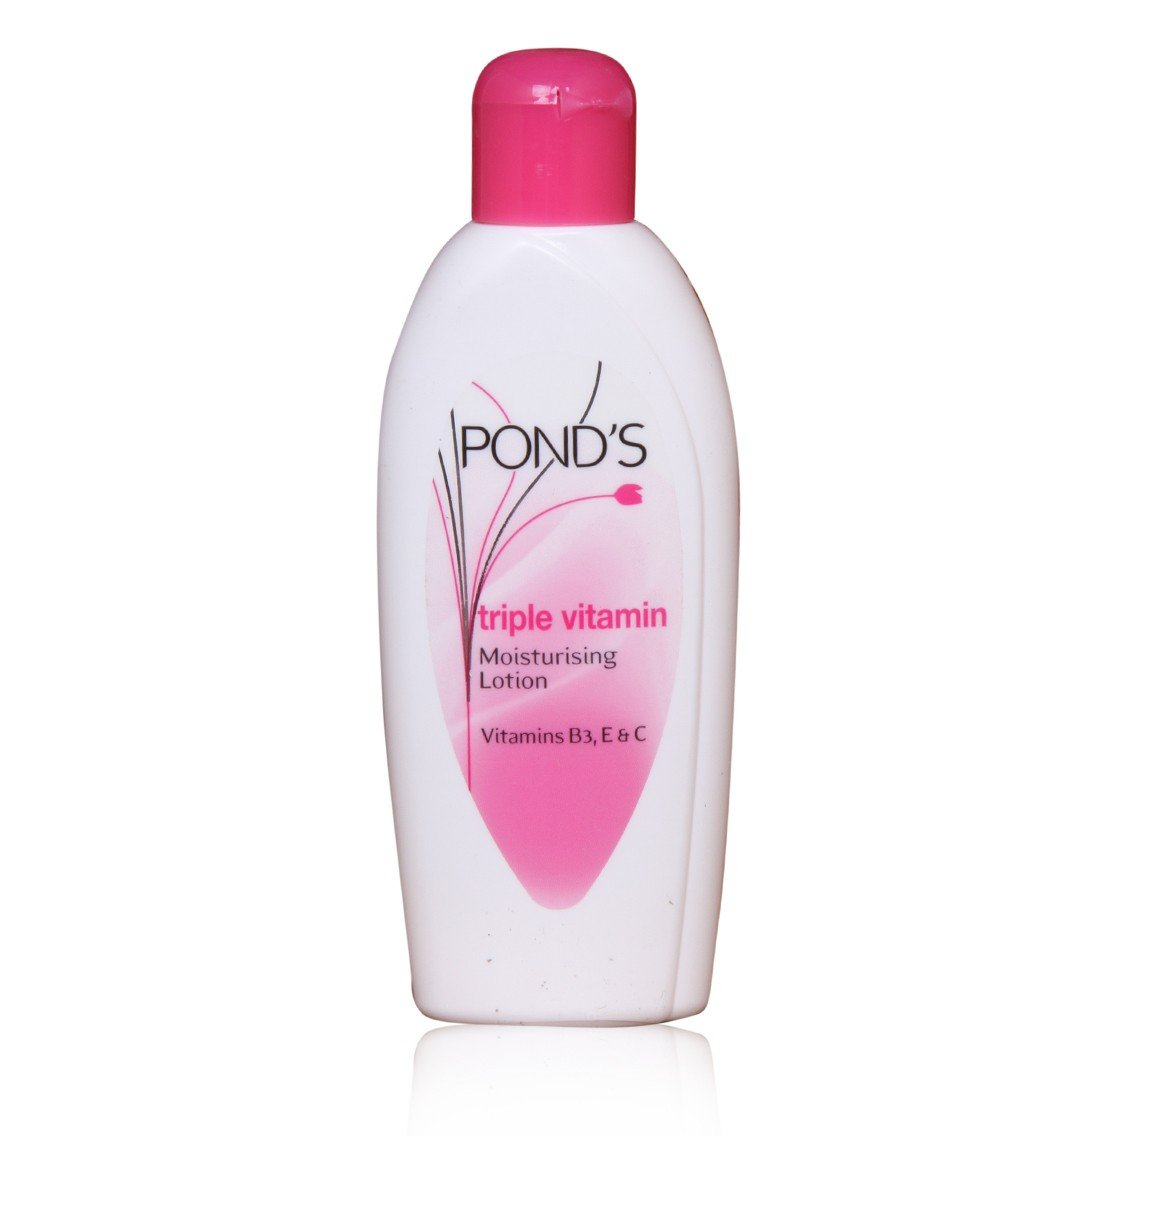 Amazon.com: POND'S Triple Vitamin Moisturising Body Lotion, 100ml ...